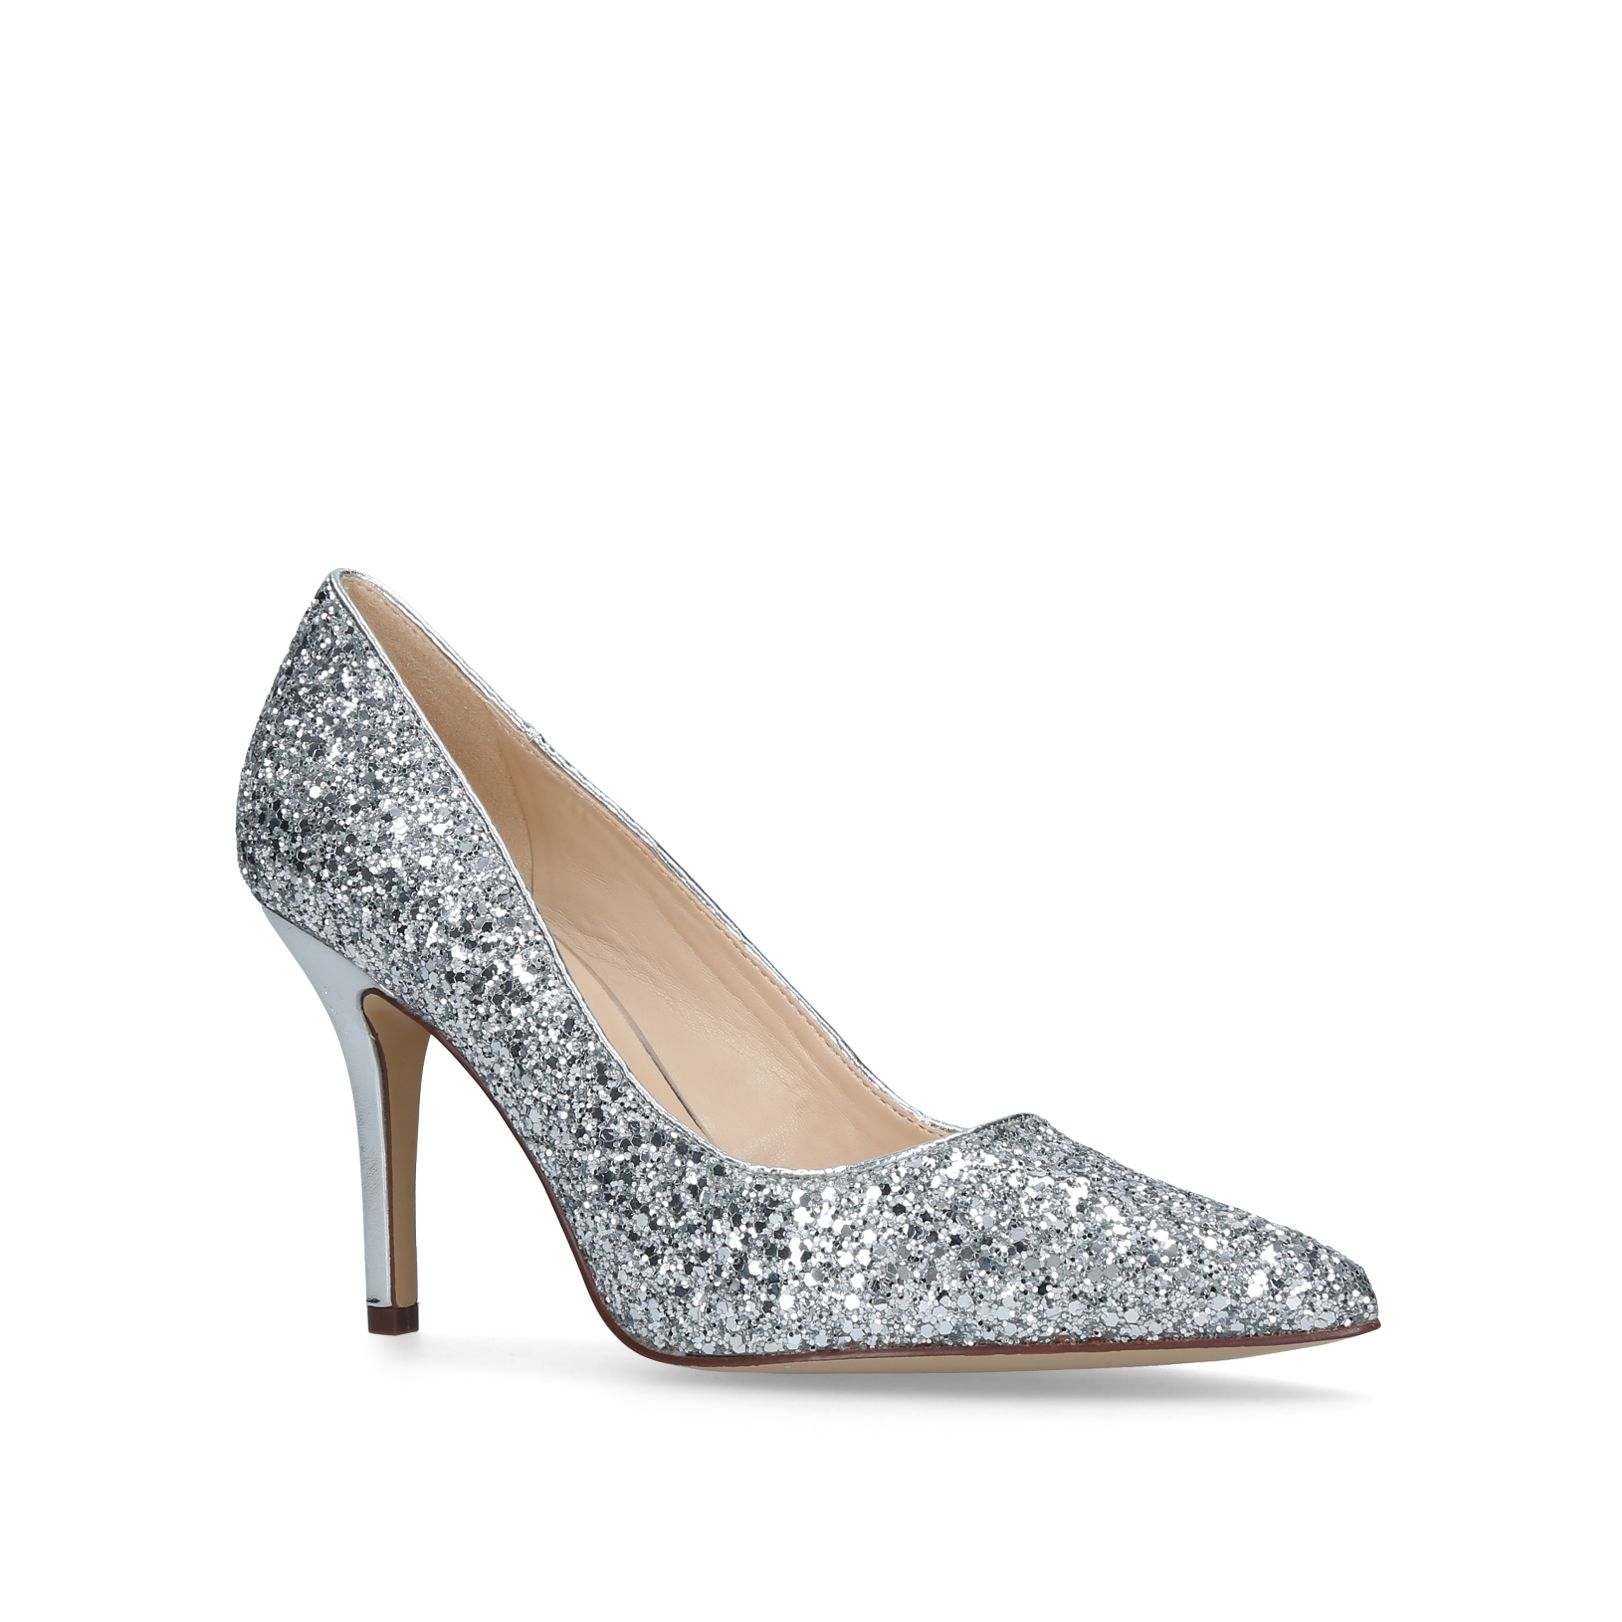 Nine West Flagship court shoes, Silver